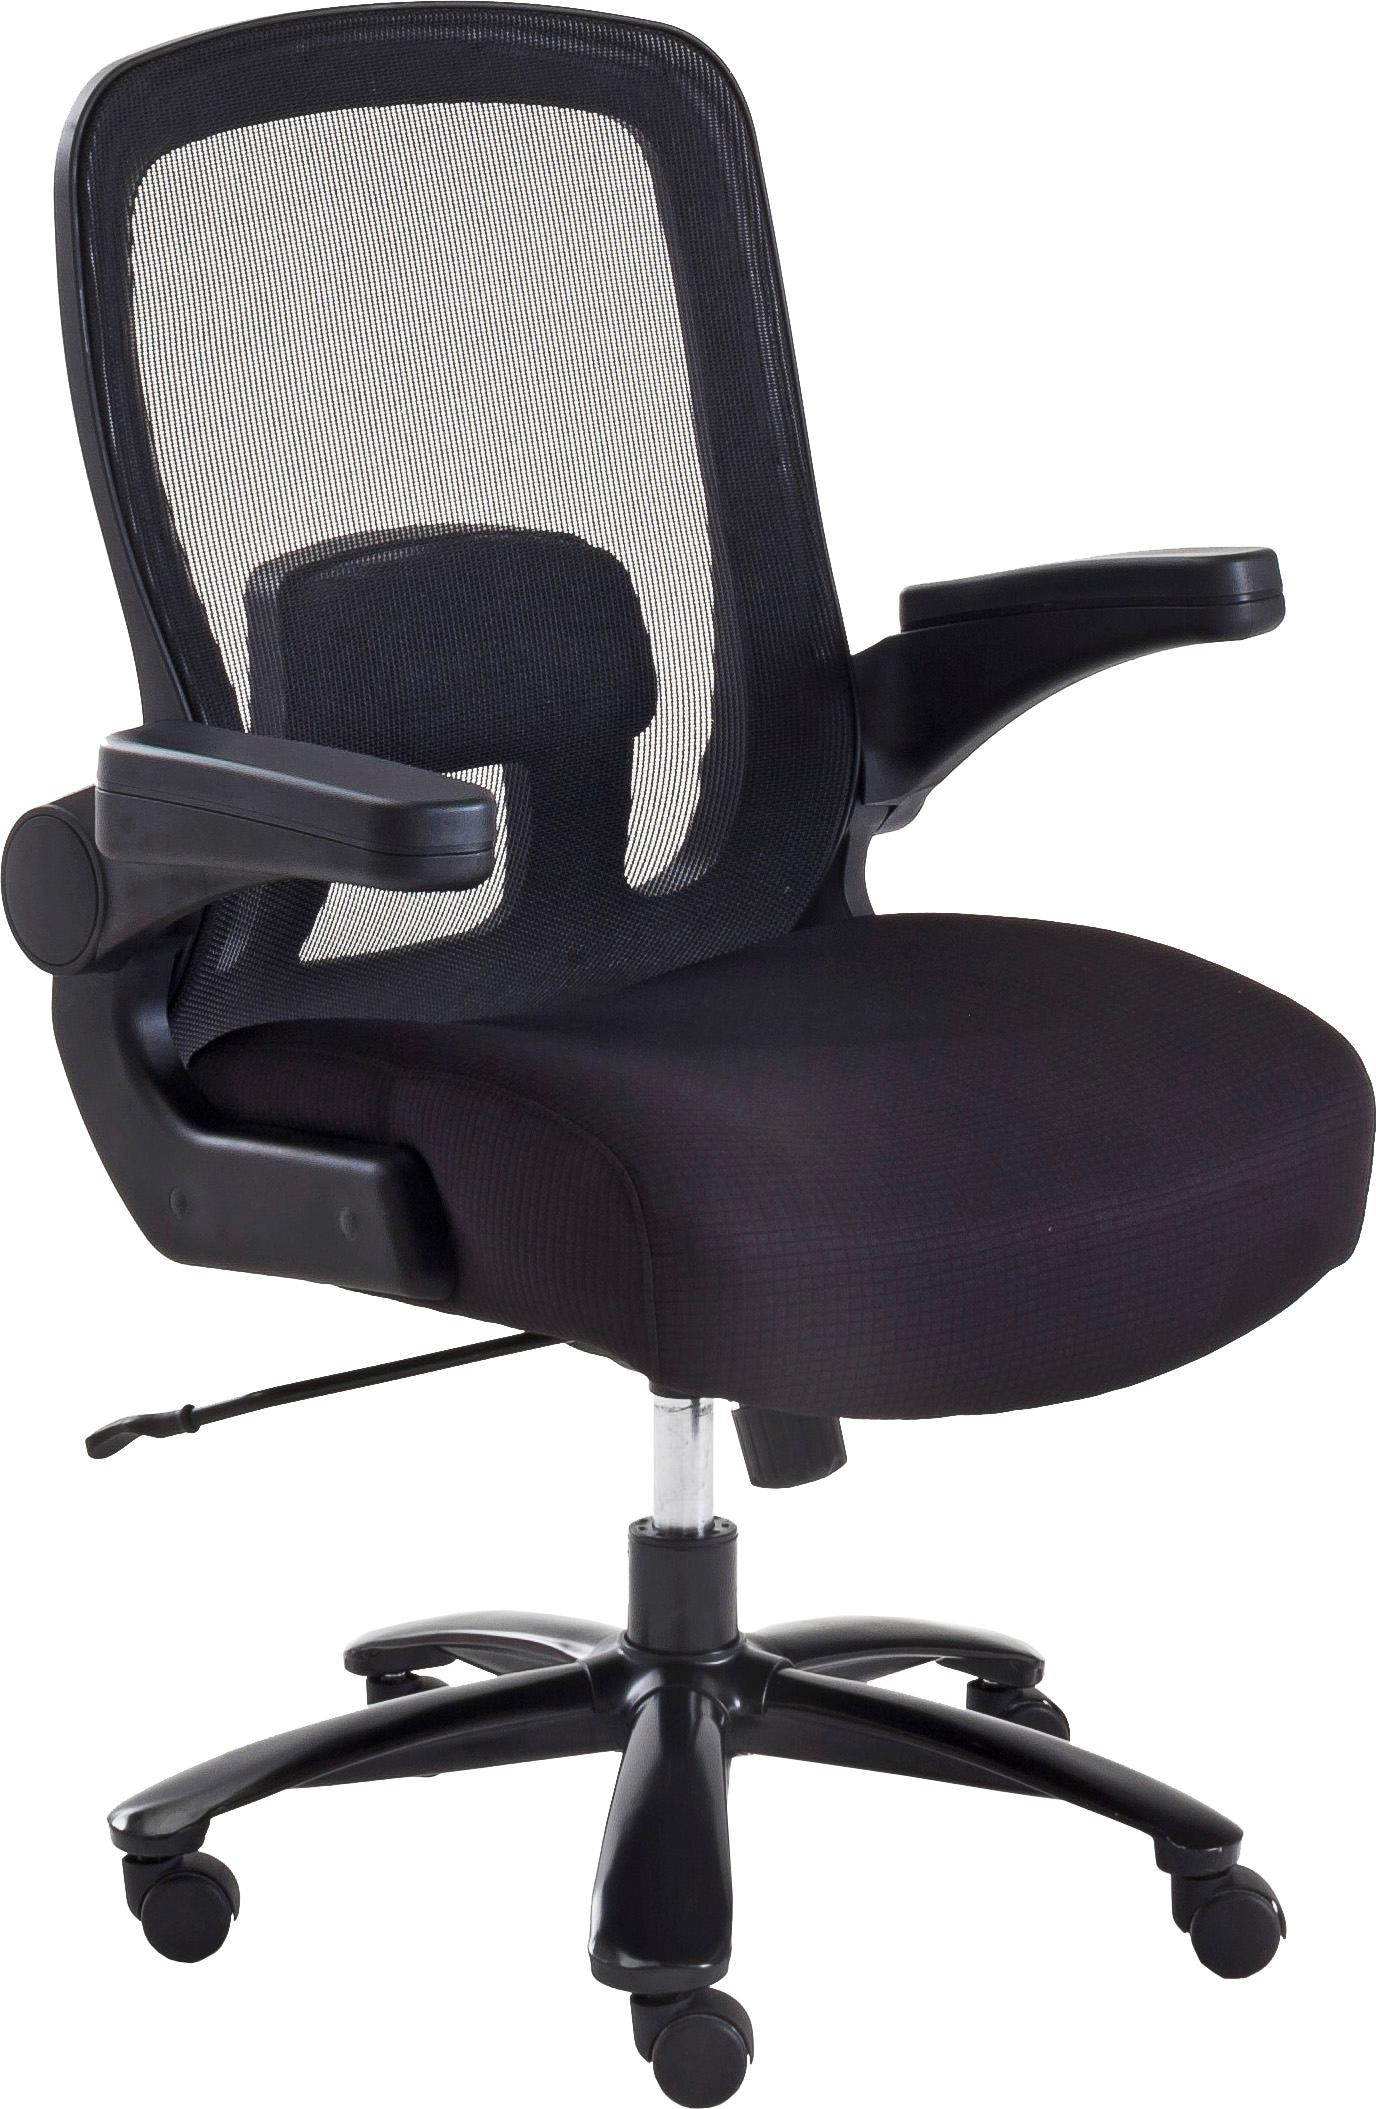 Chefsessel REAL COMFORT 6